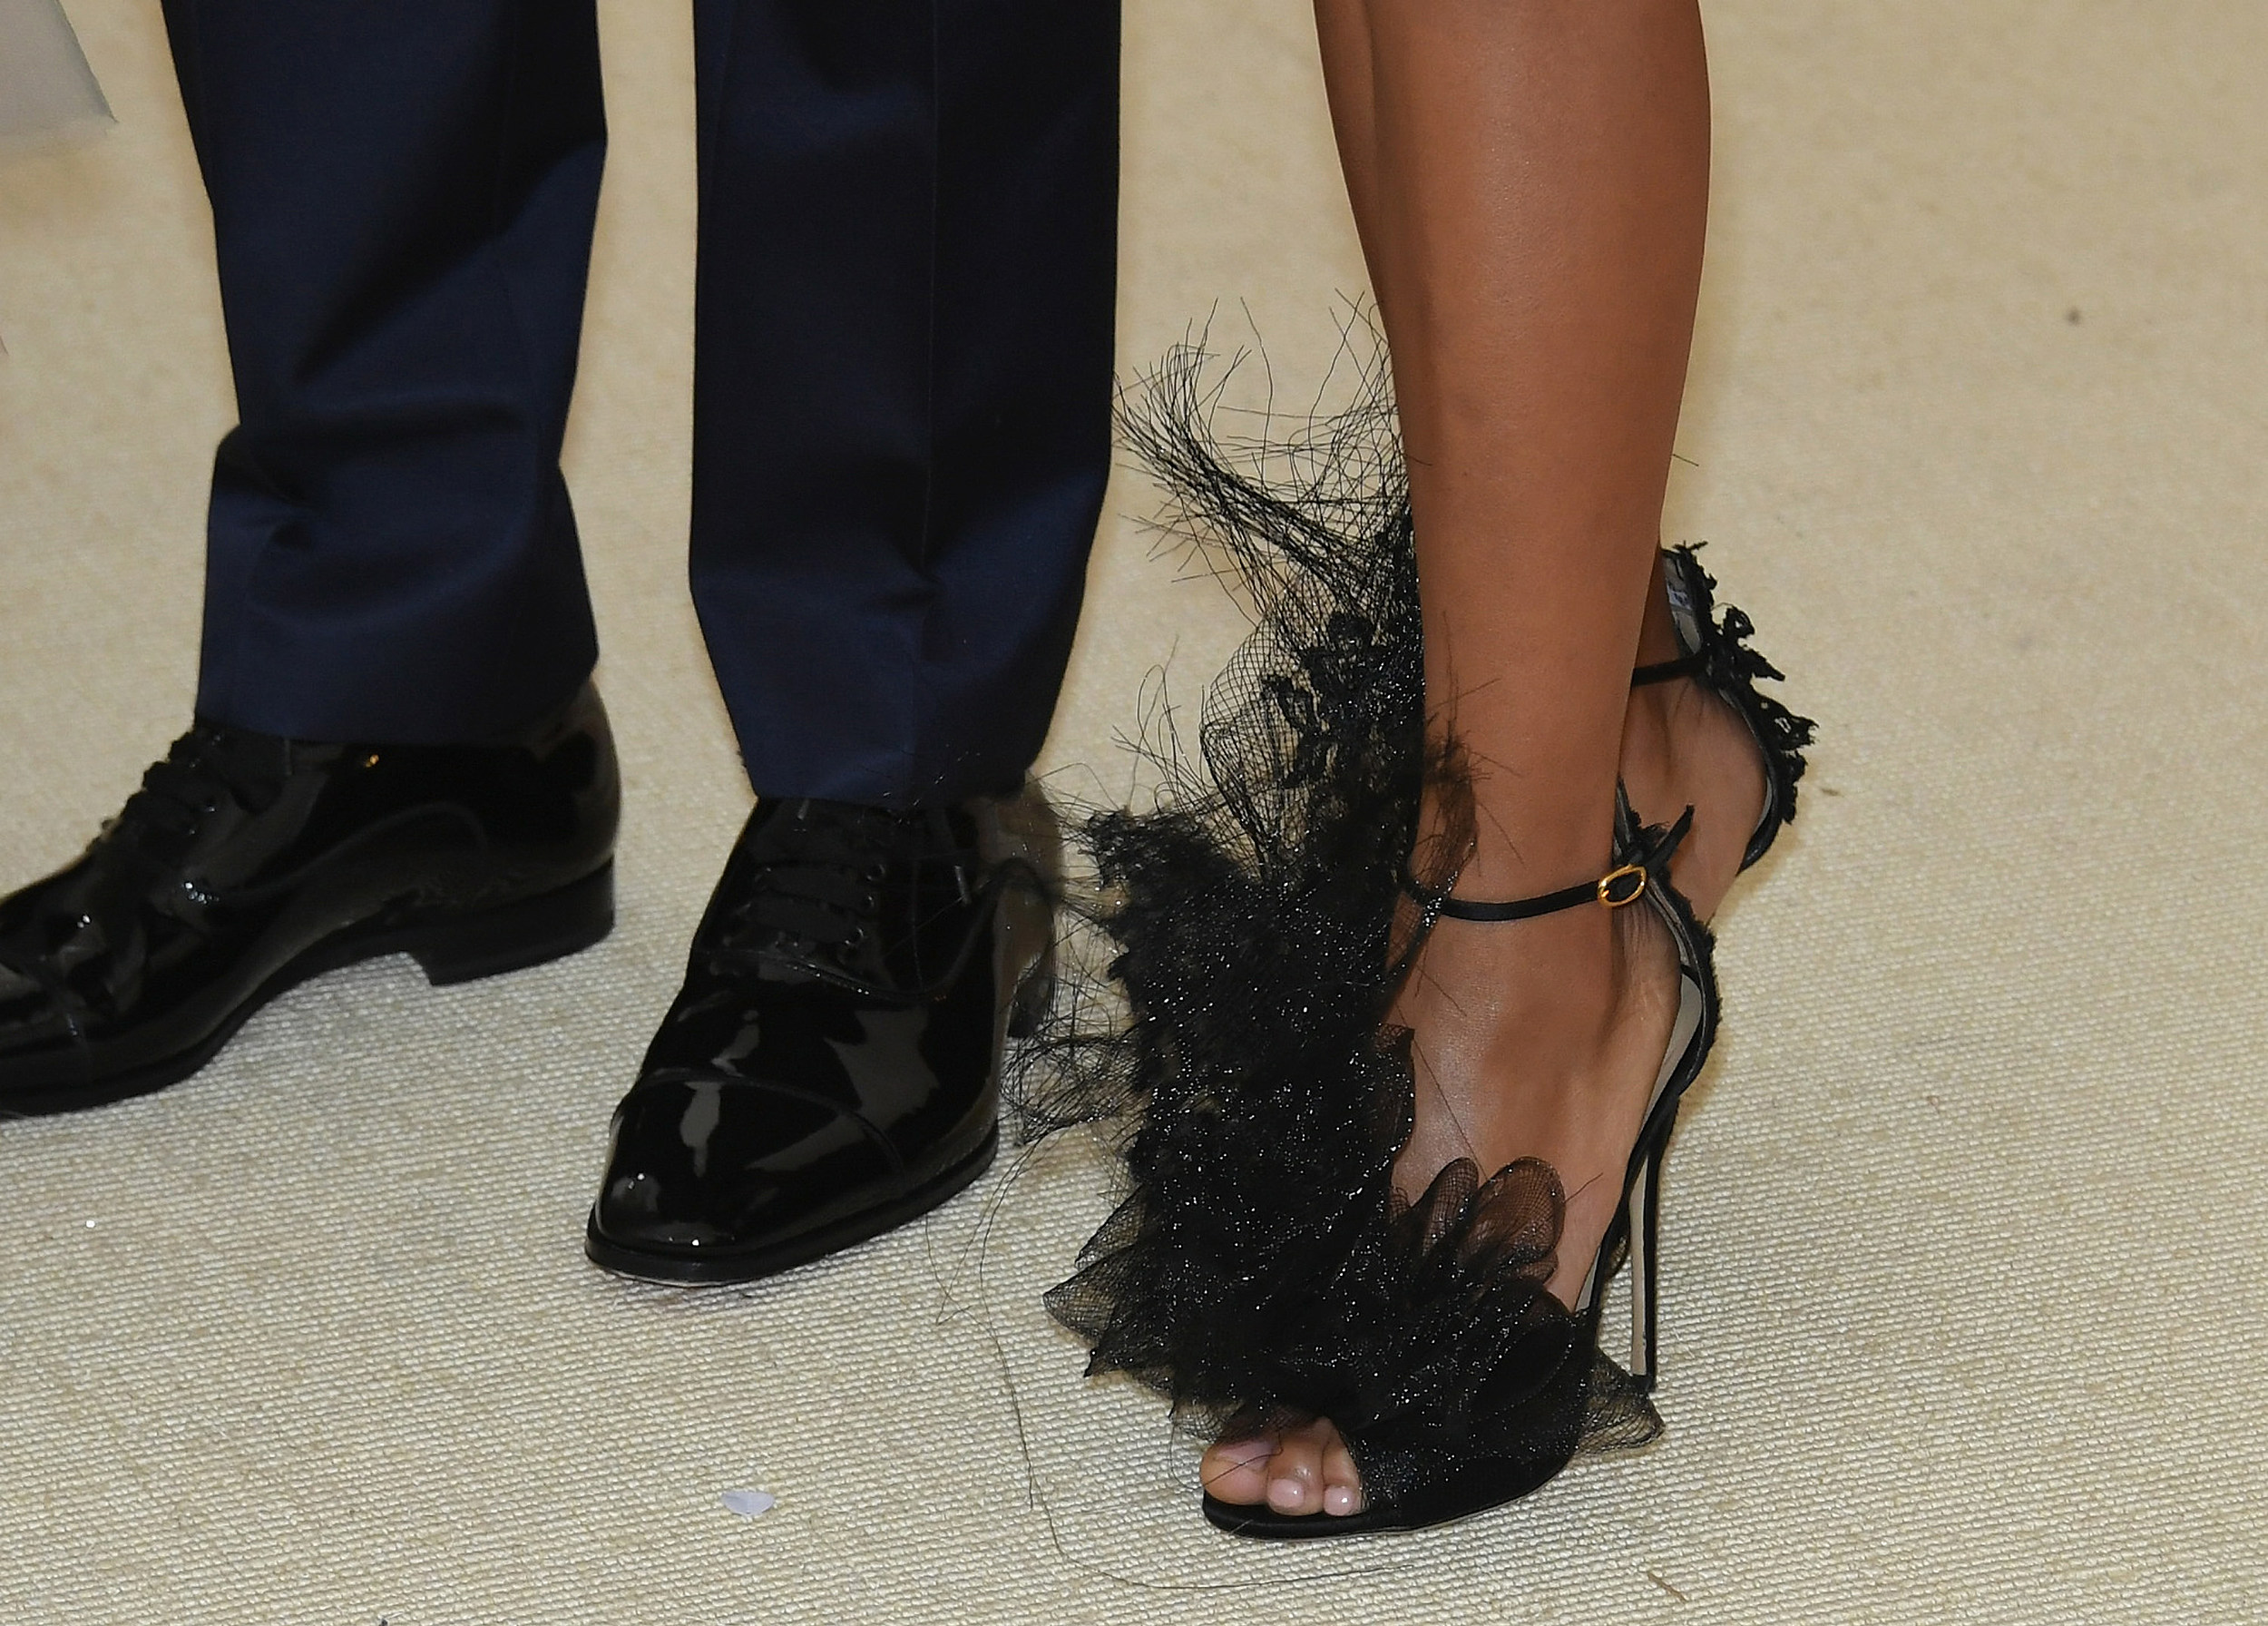 Dating a short guy and wearing heels after ankle